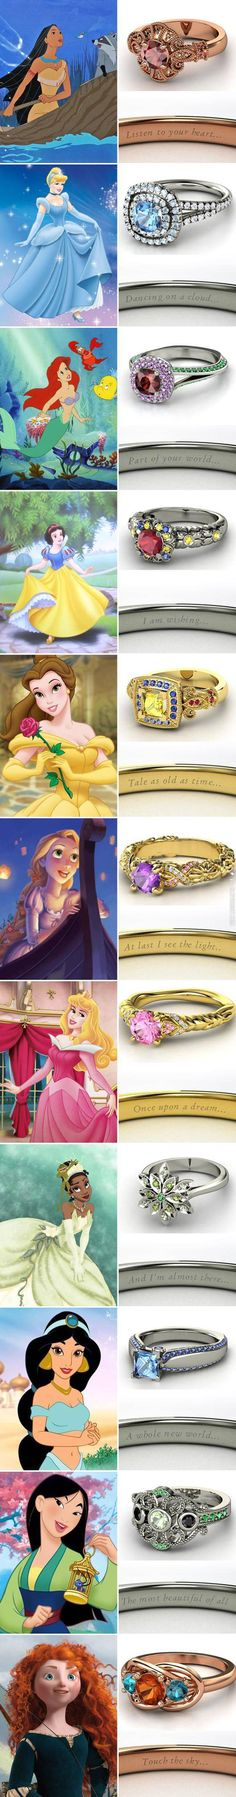 Disney princess fandom wedding rings. @rockradioaddict @DanaNGavin